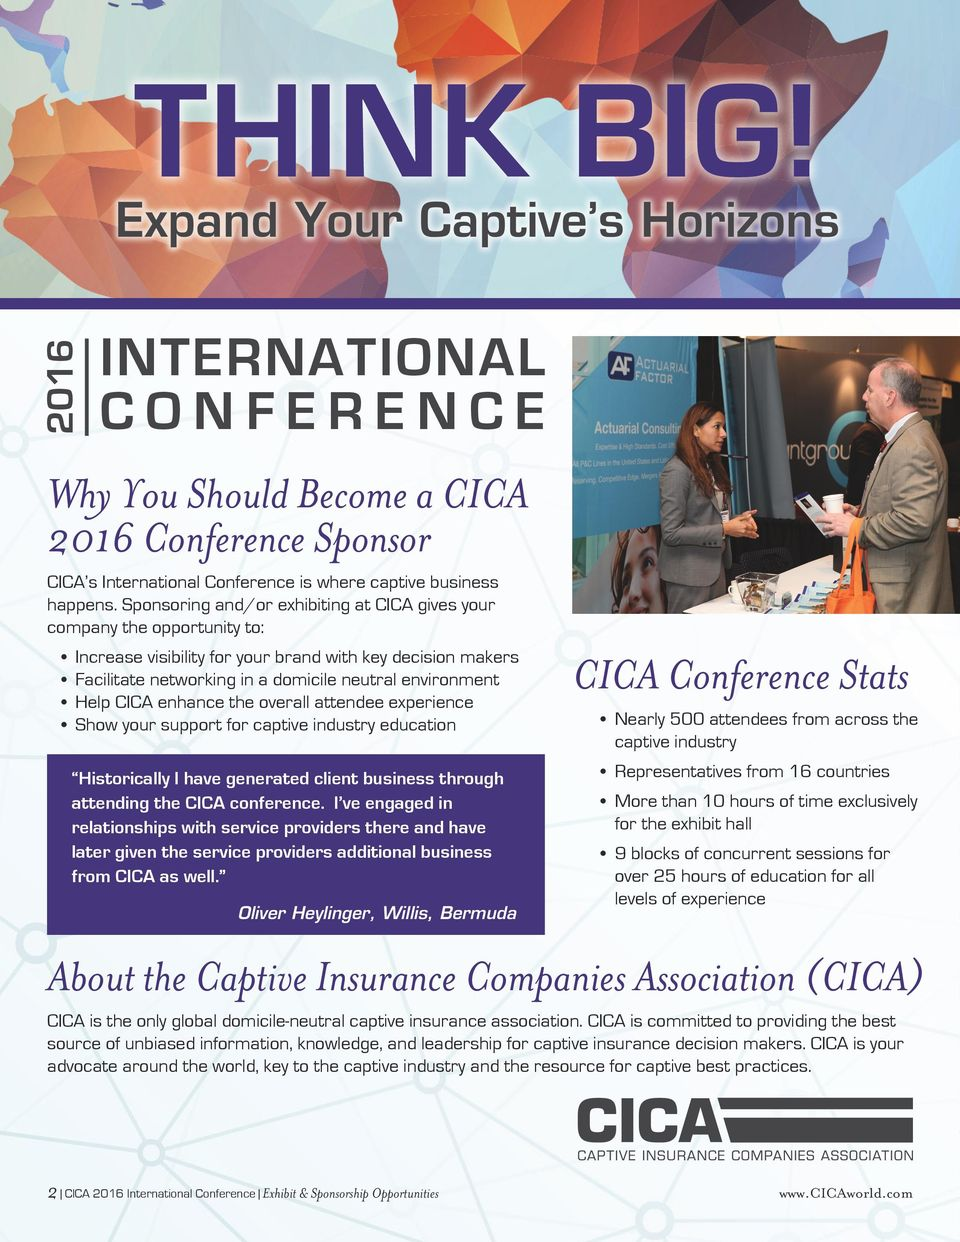 CICA enhance the overall attendee experience Show your support for captive industry education Historically I have generated client business through attending the CICA conference.